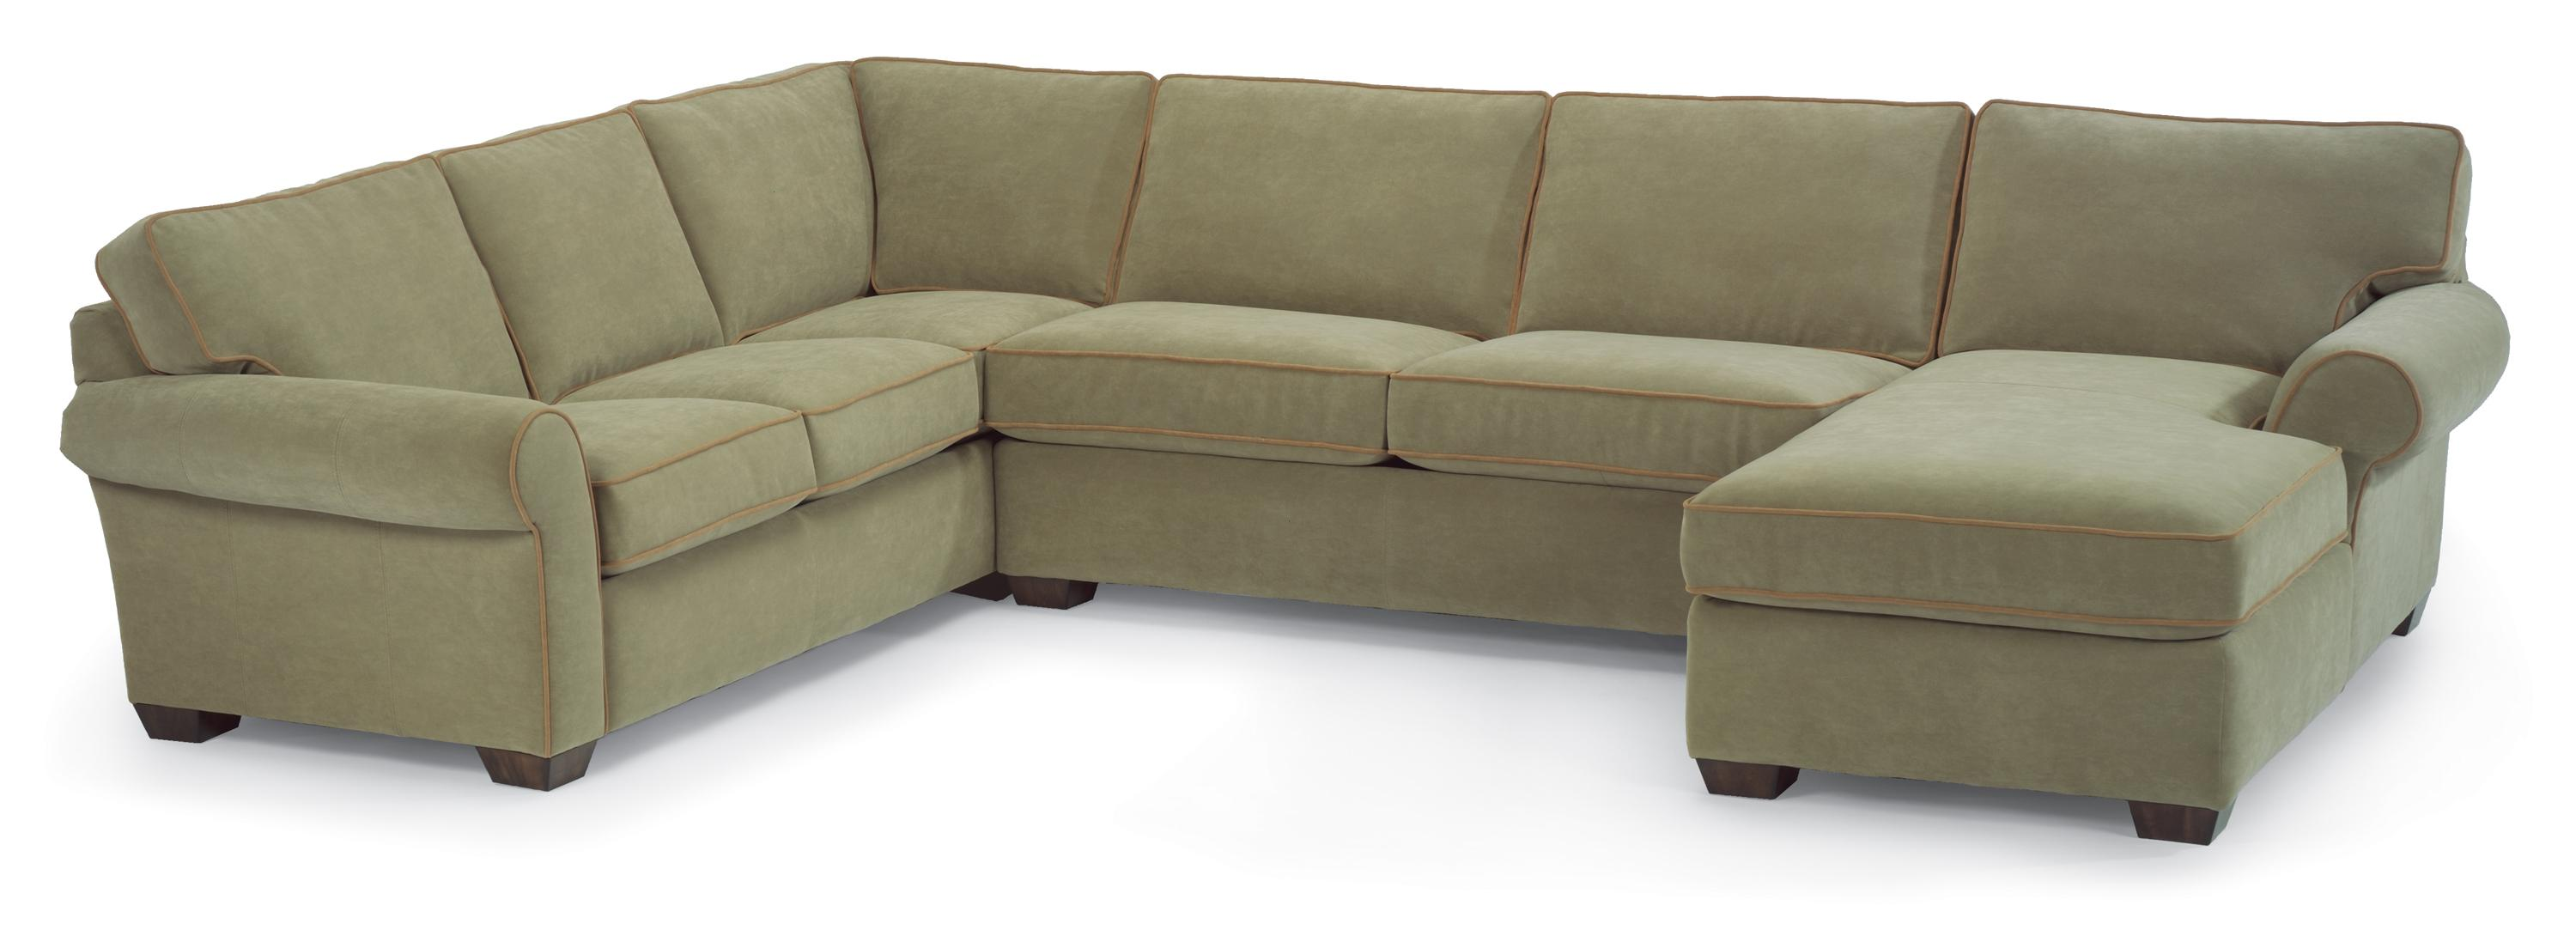 Flexsteel Vail Stationary Sectional Sofa with Right Side Chaise